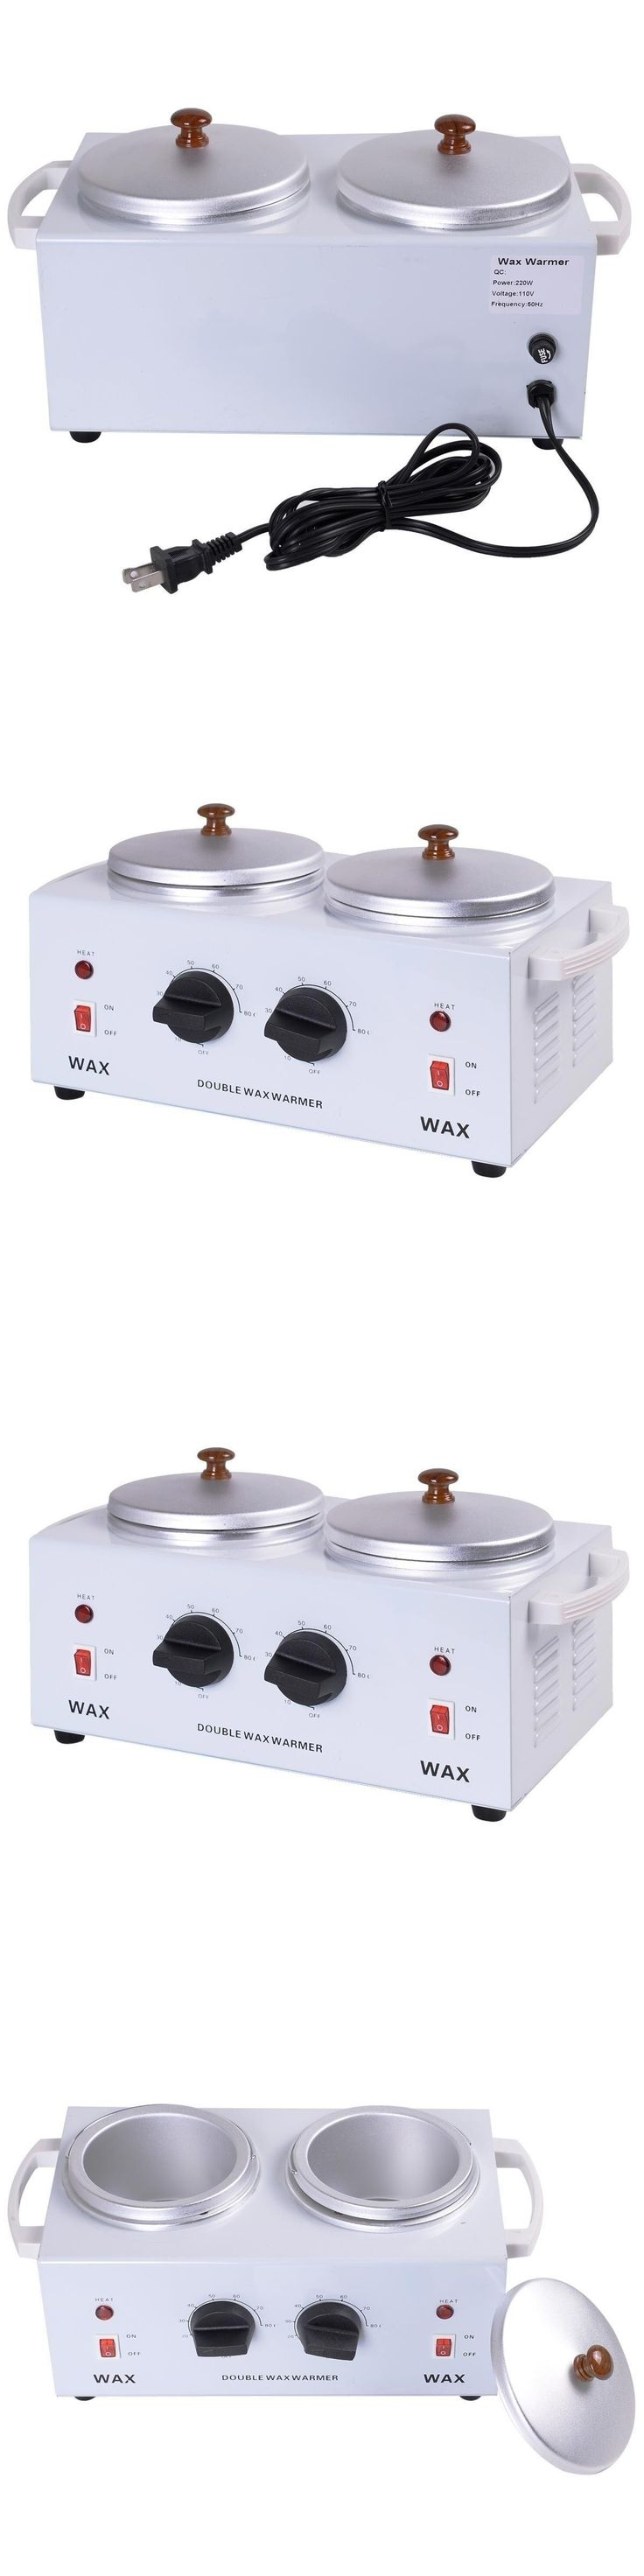 Professional Waxing Warmers: Apontus Apontus Salon Hair Removal Hot Wax Warmer Heater (Double) BUY IT NOW ONLY: $80.47